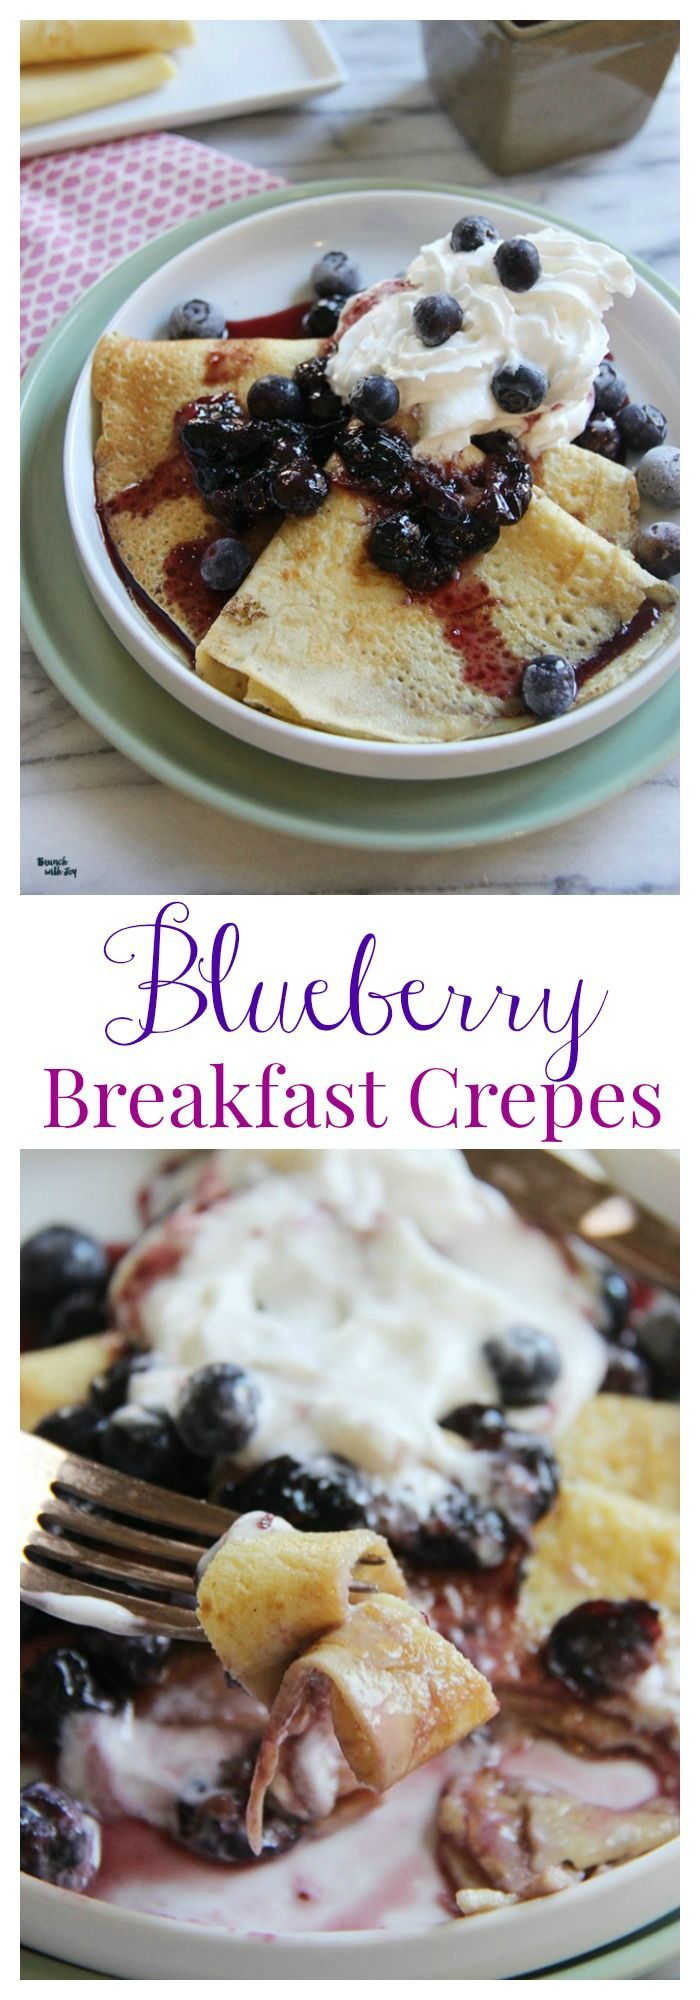 Blueberry Crepes - a no-fail recipe for breakfast, lunxch, or brinner | cupcakesandkalechips.com